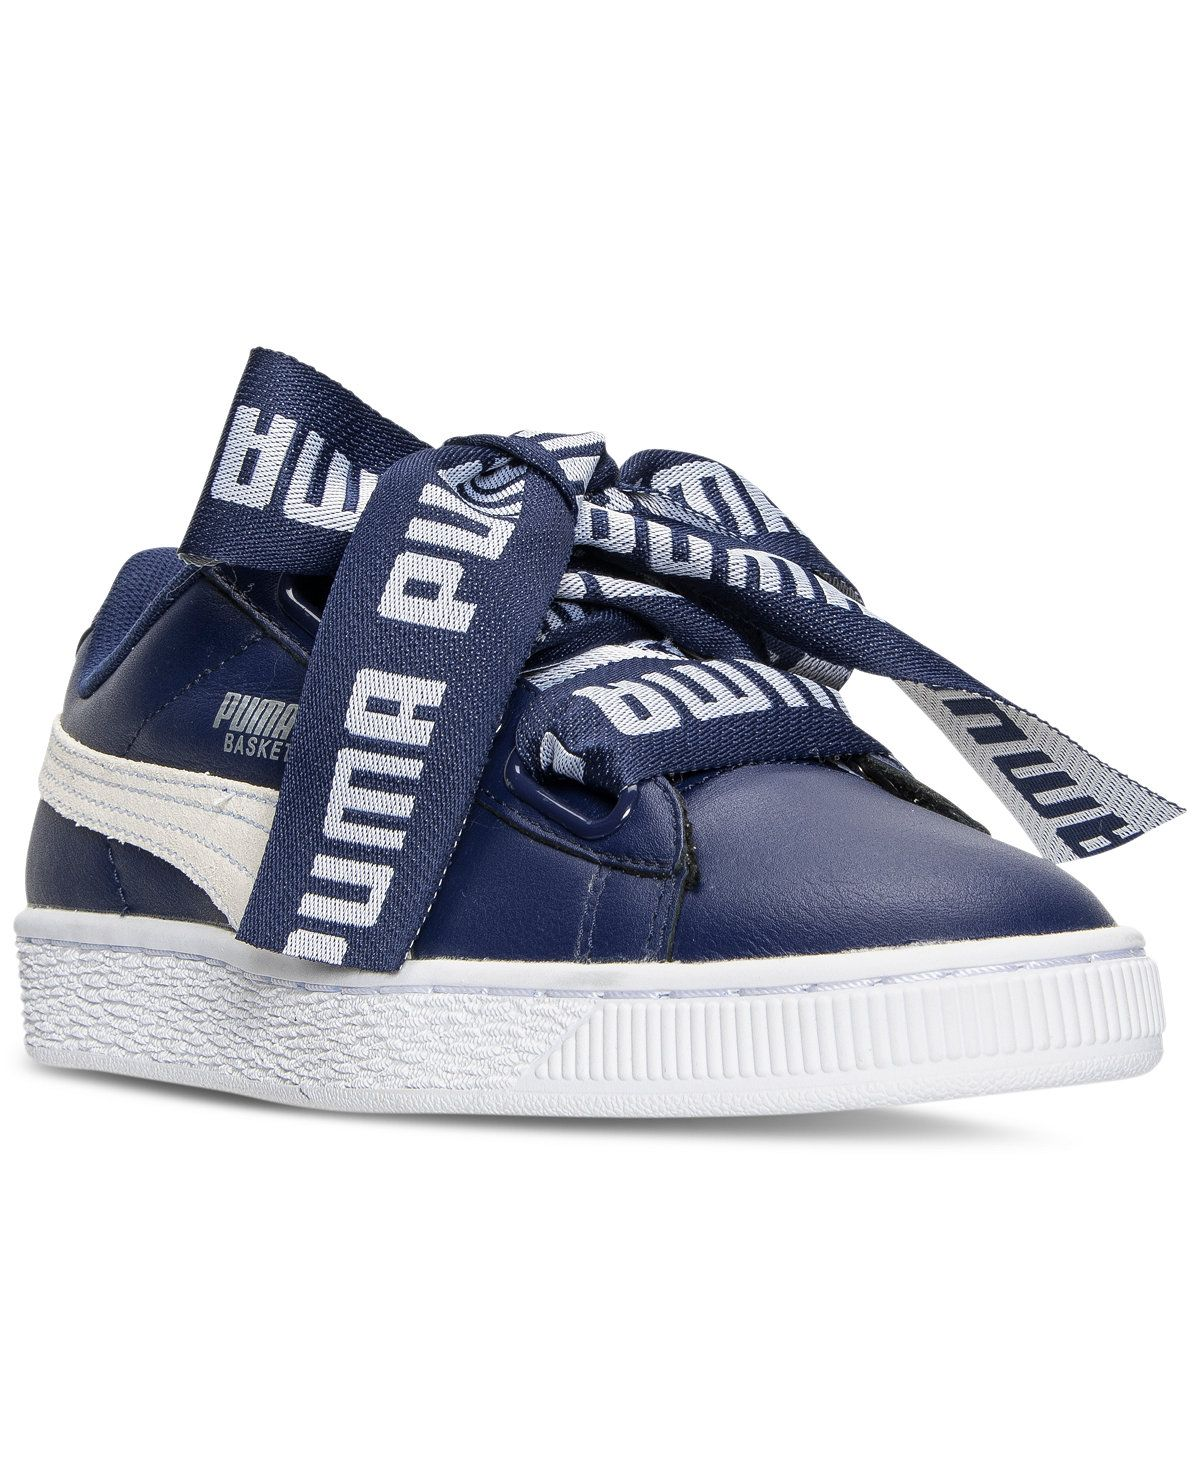 new product 81fae 3bb72 Puma Women s Basket Heart DE Casual Sneakers from Finish Line - Finish Line  Athletic Sneakers - Shoes - Macy s